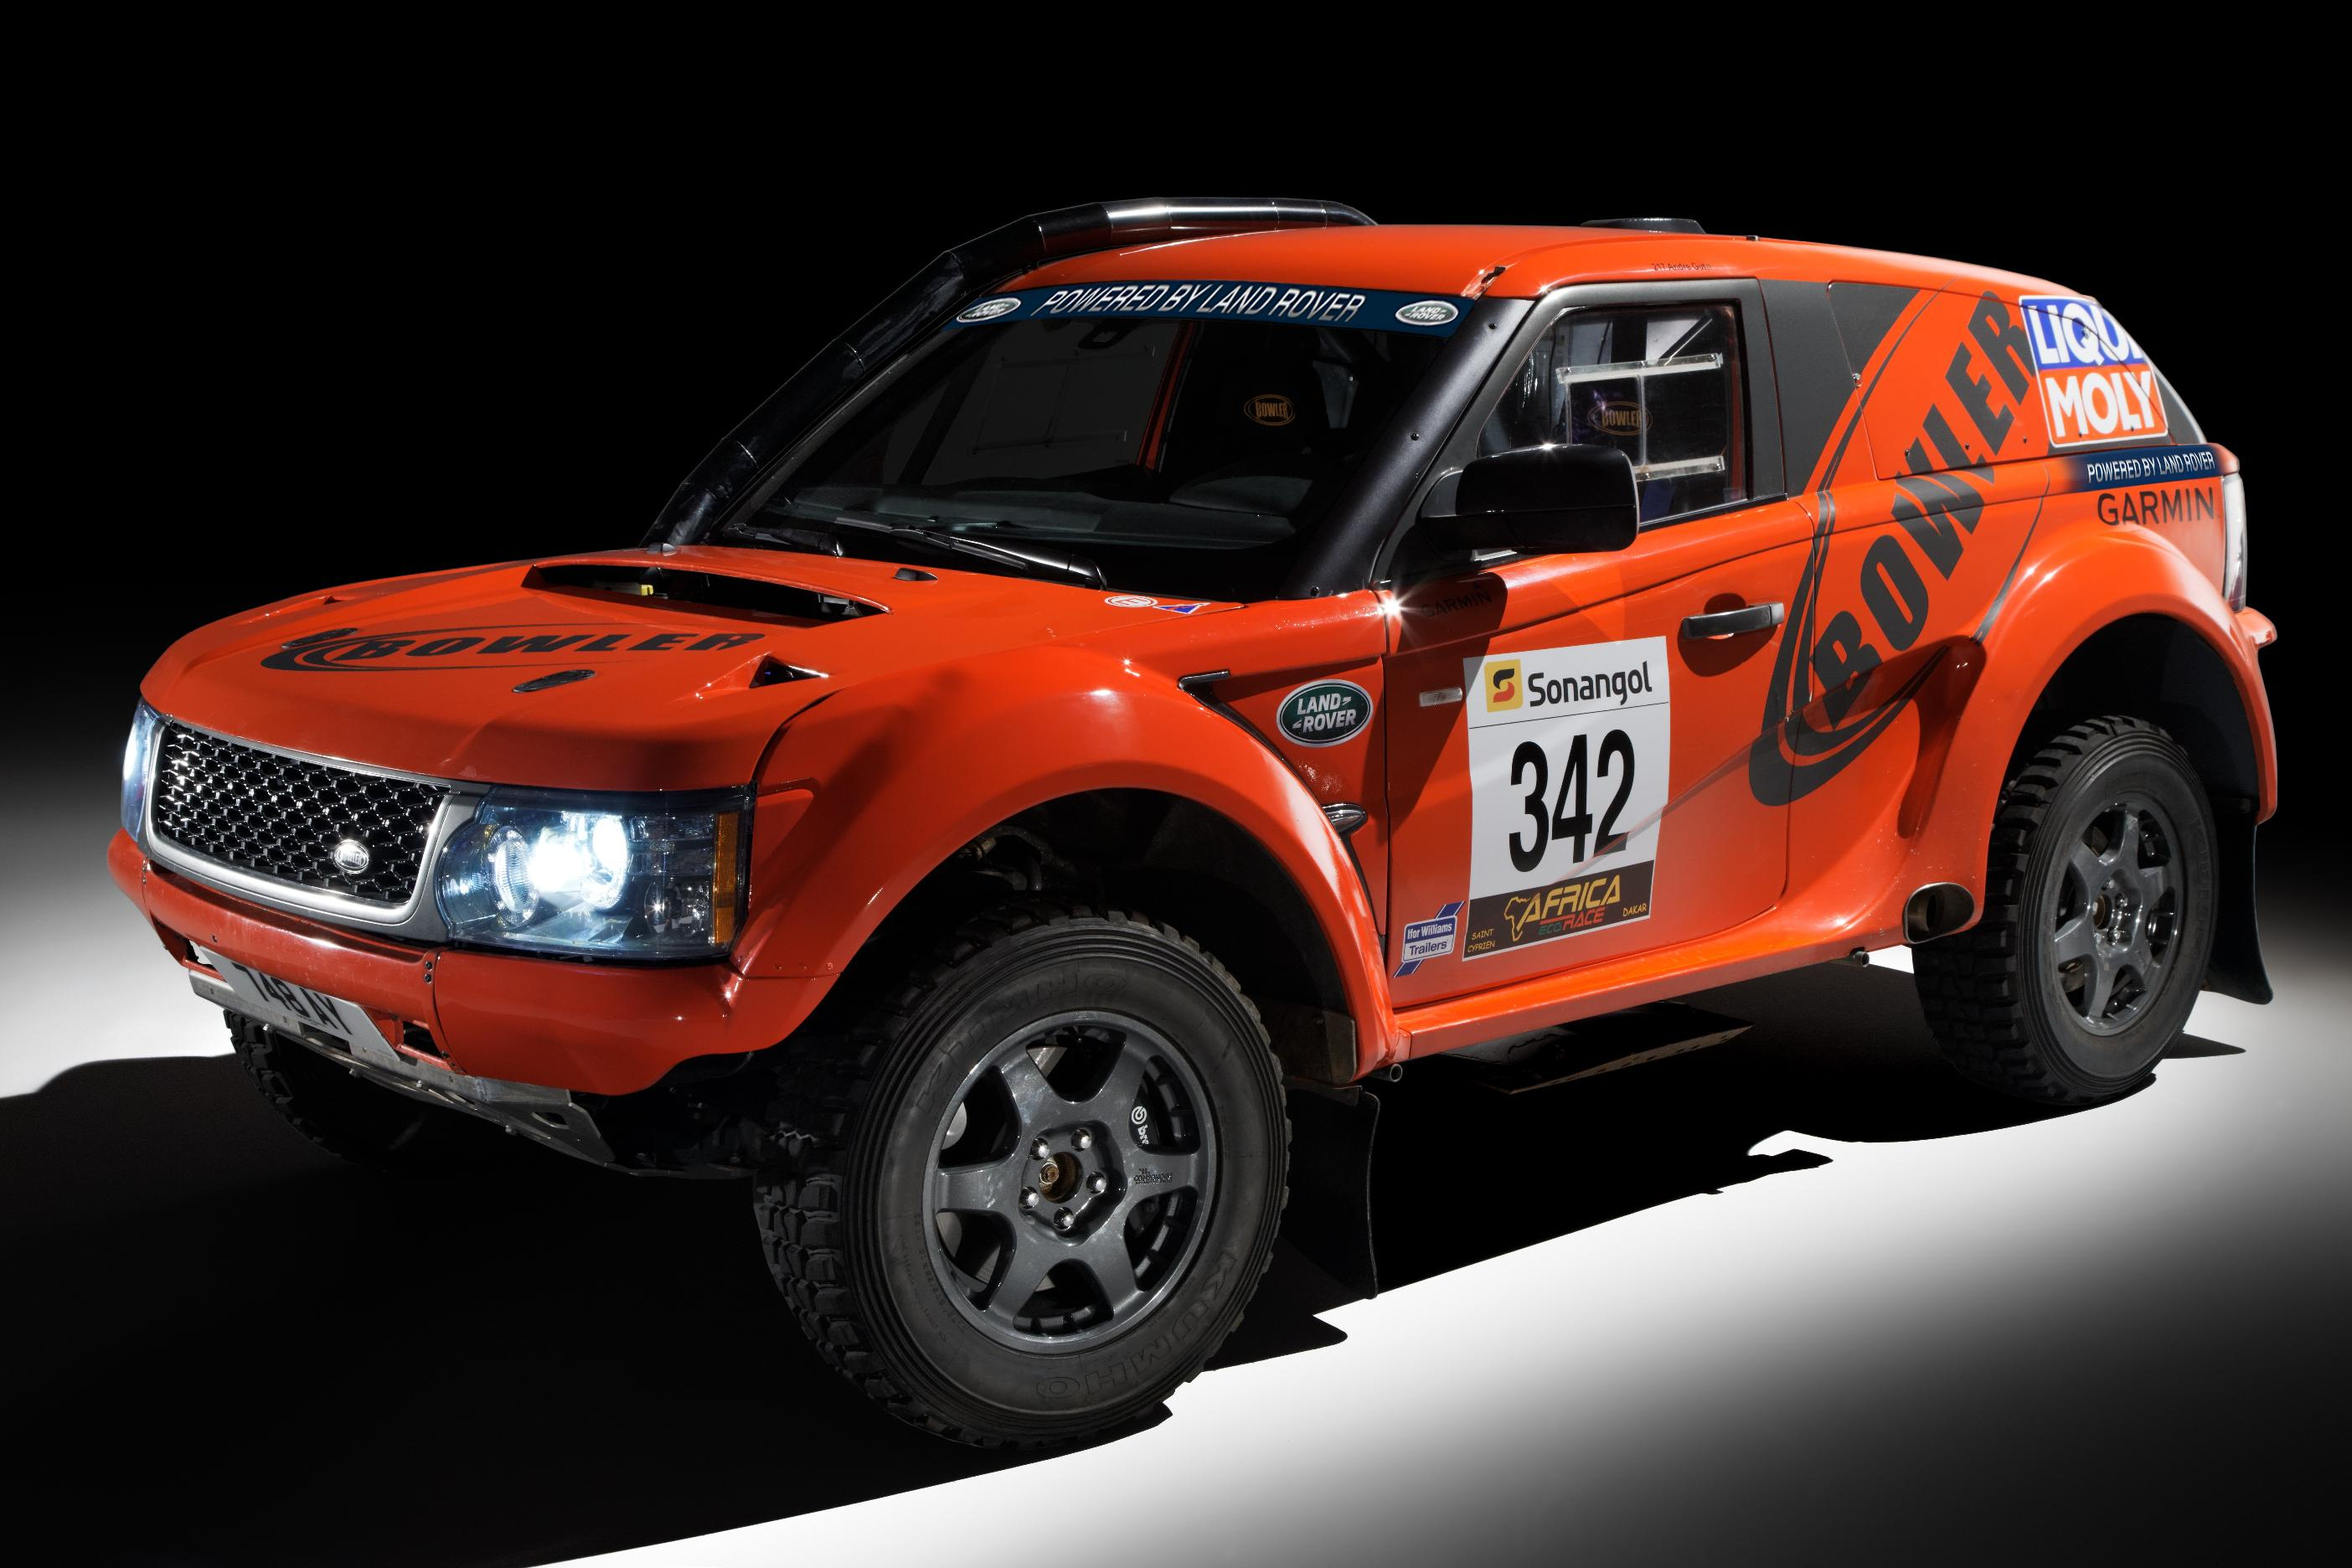 Land rover bowler photo - 1